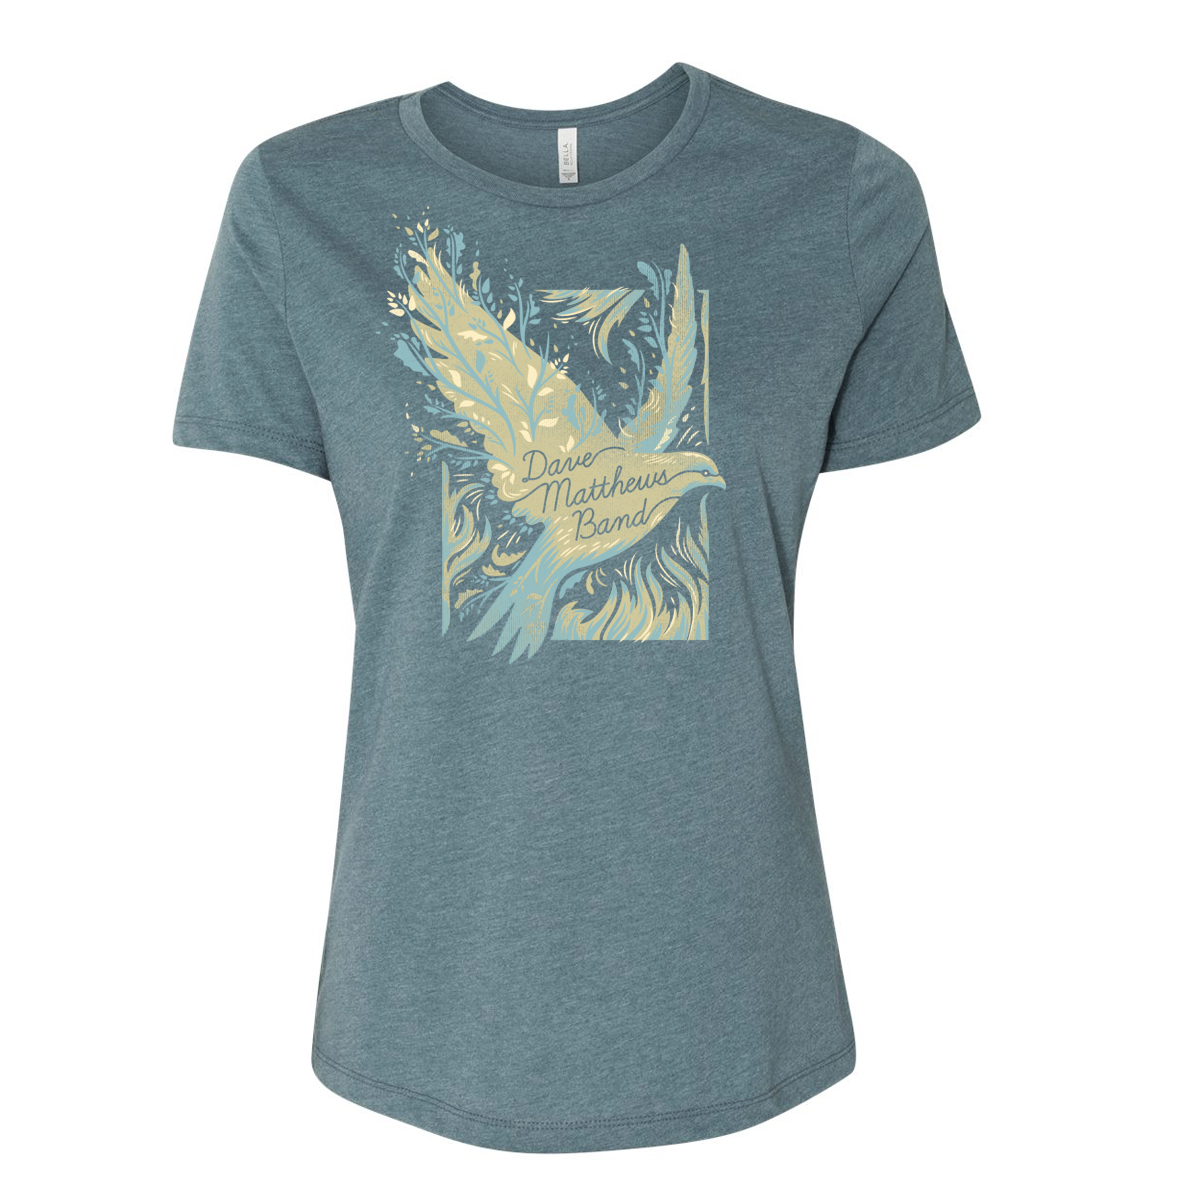 Women's Natural Bird Tee